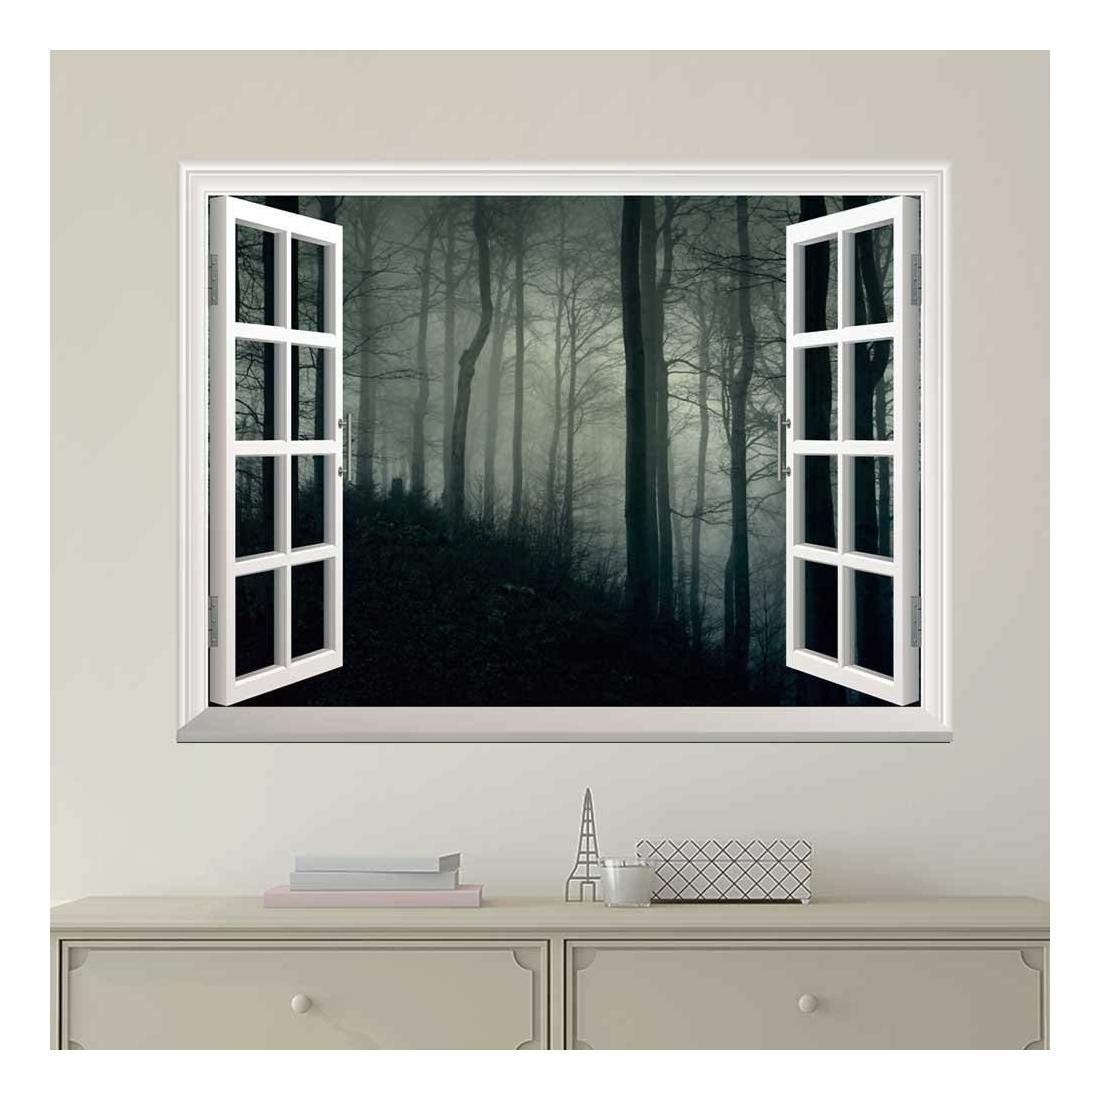 wall26 Modern White Window Looking Out Into a Dark Foggy Forest - Wall Mural, Removable Sticker, Home Decor - 36x48 inches